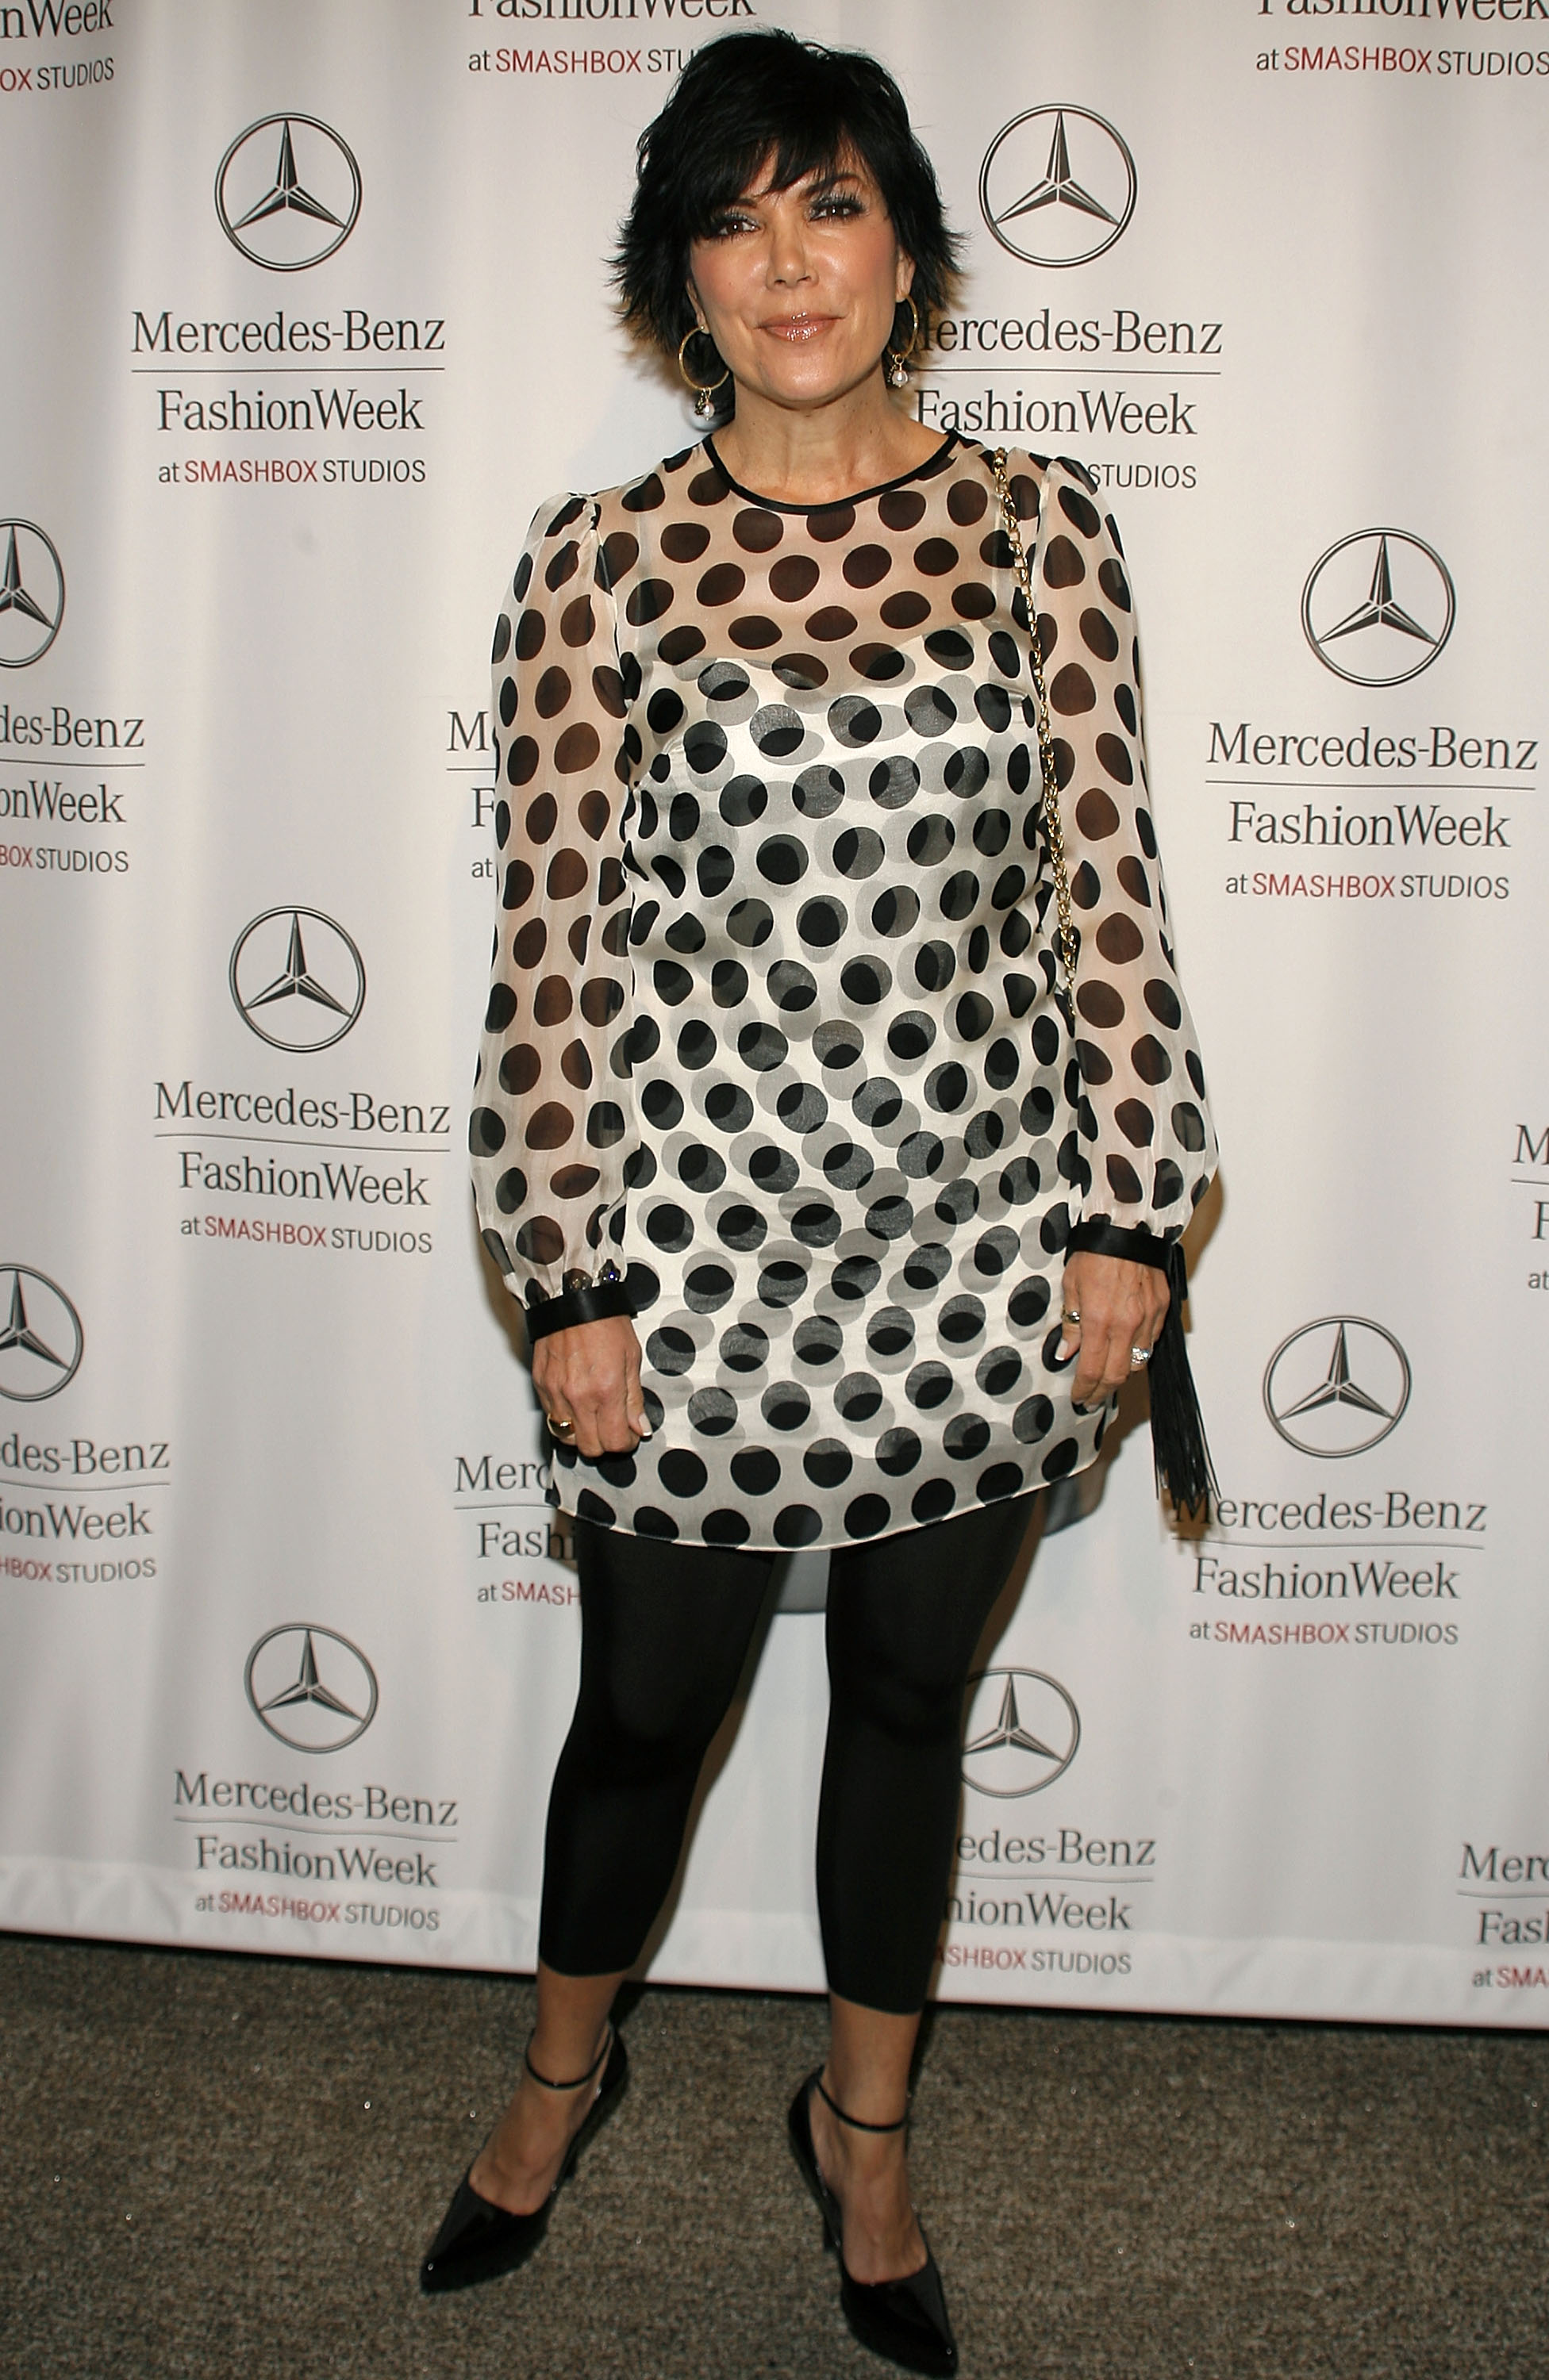 Kris Jenner attends Mercedes Benz Fashion Week held at Smashbox Studios on March 21, 2007 in Culver City, California. (Photo by Mark Davis/Getty Images)